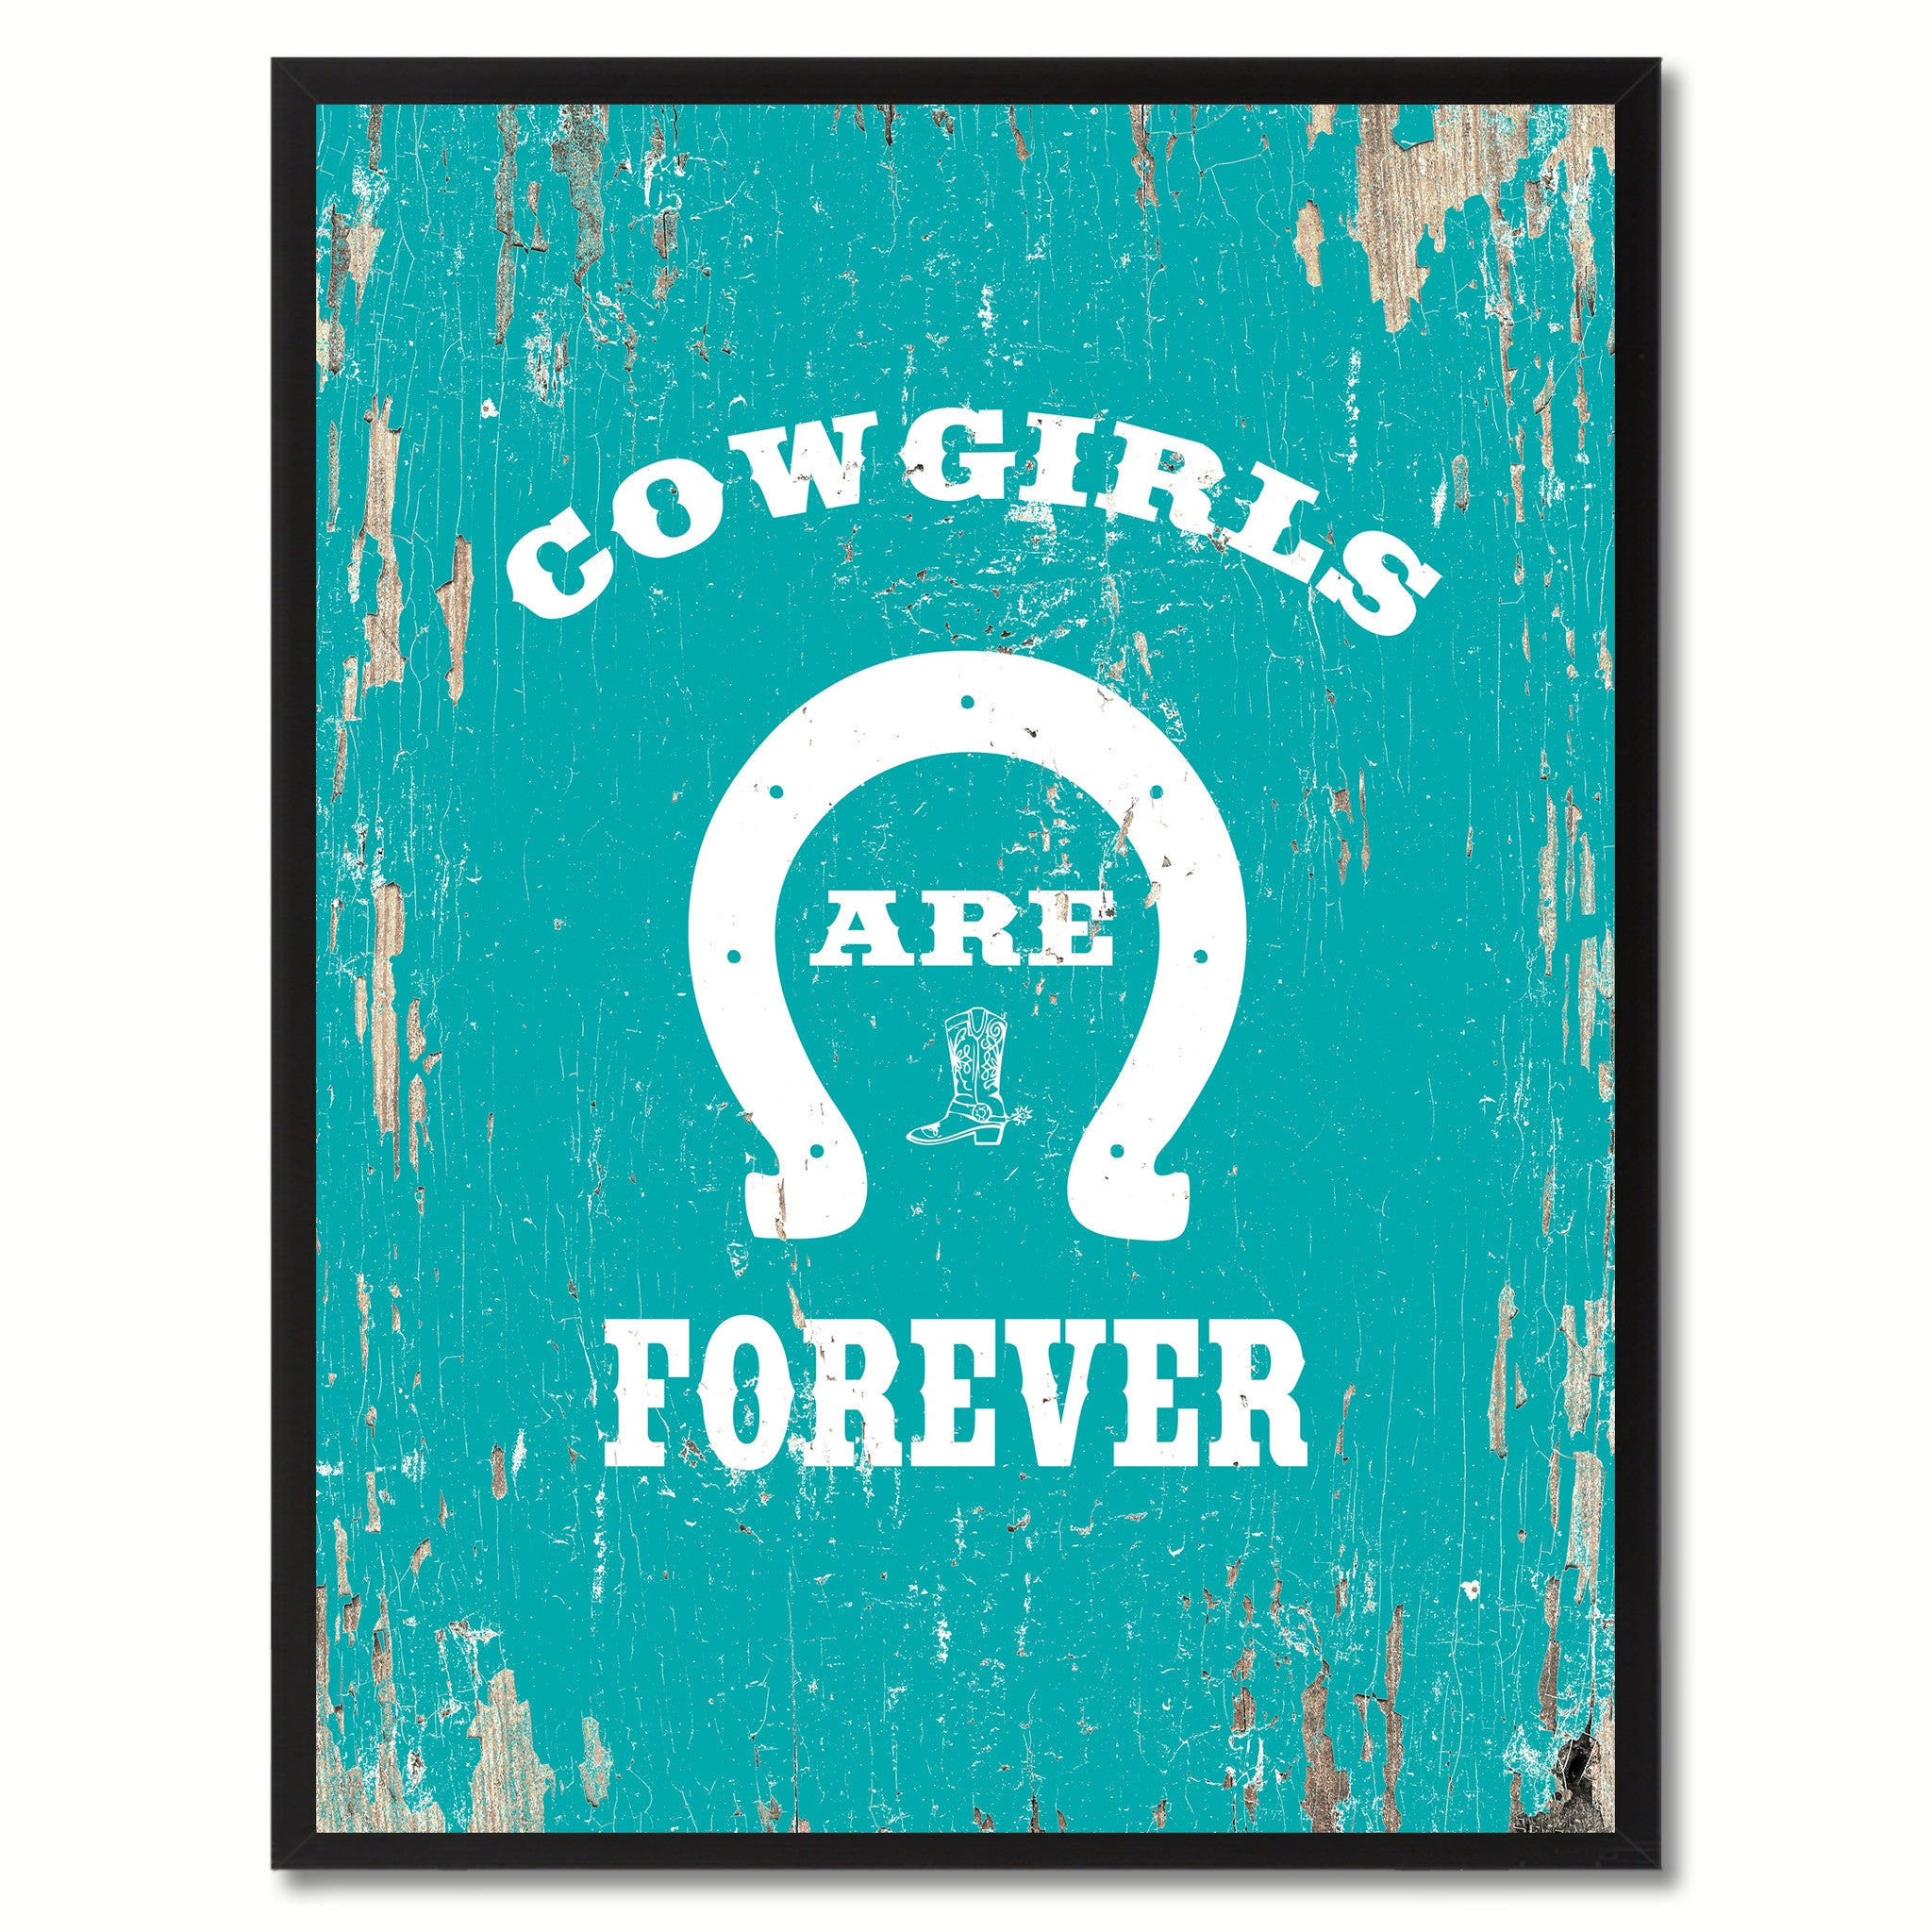 Cowgirls Are Forever Saying Canvas Print, Black Picture Frame Home Decor Wall Art Gifts